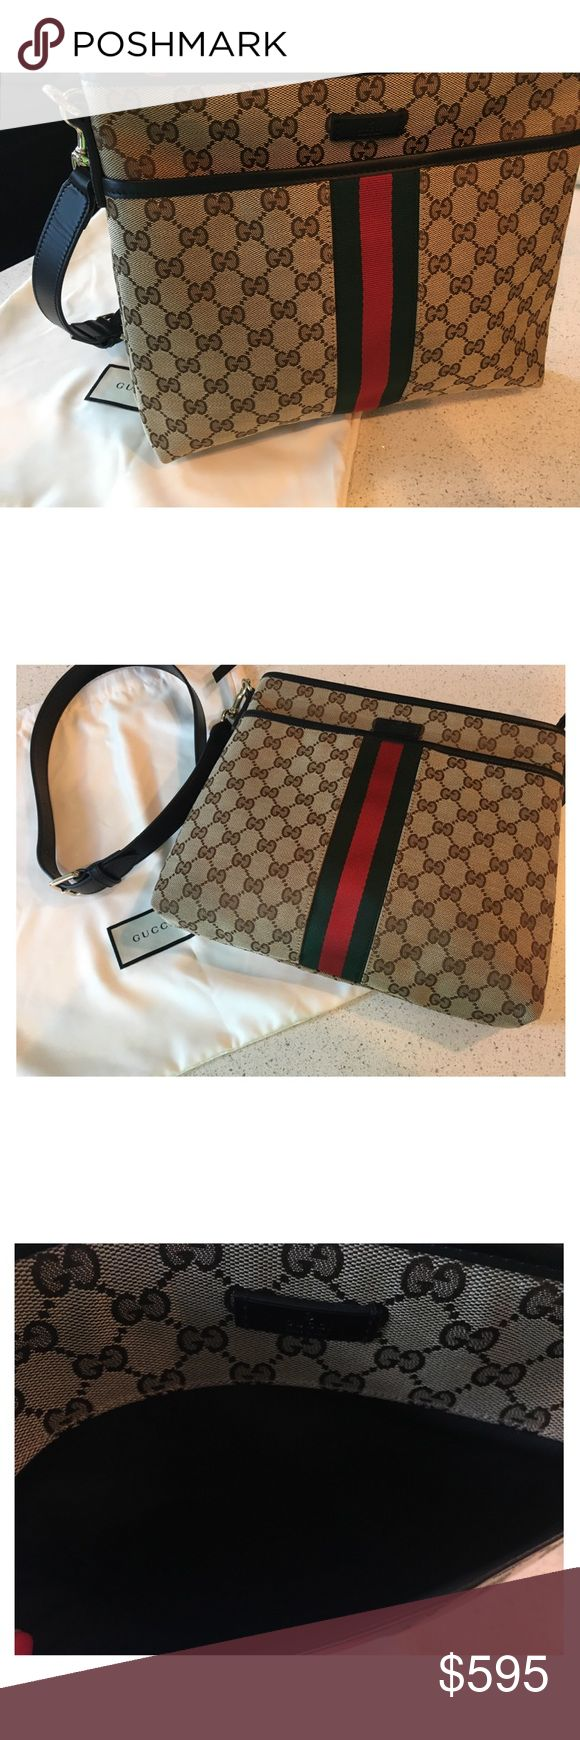 Gucci Web Canvas Cross Body Bag Super cute! But was a gift that I've never used. NEW WITHOUT TAGS. Gucci Bags